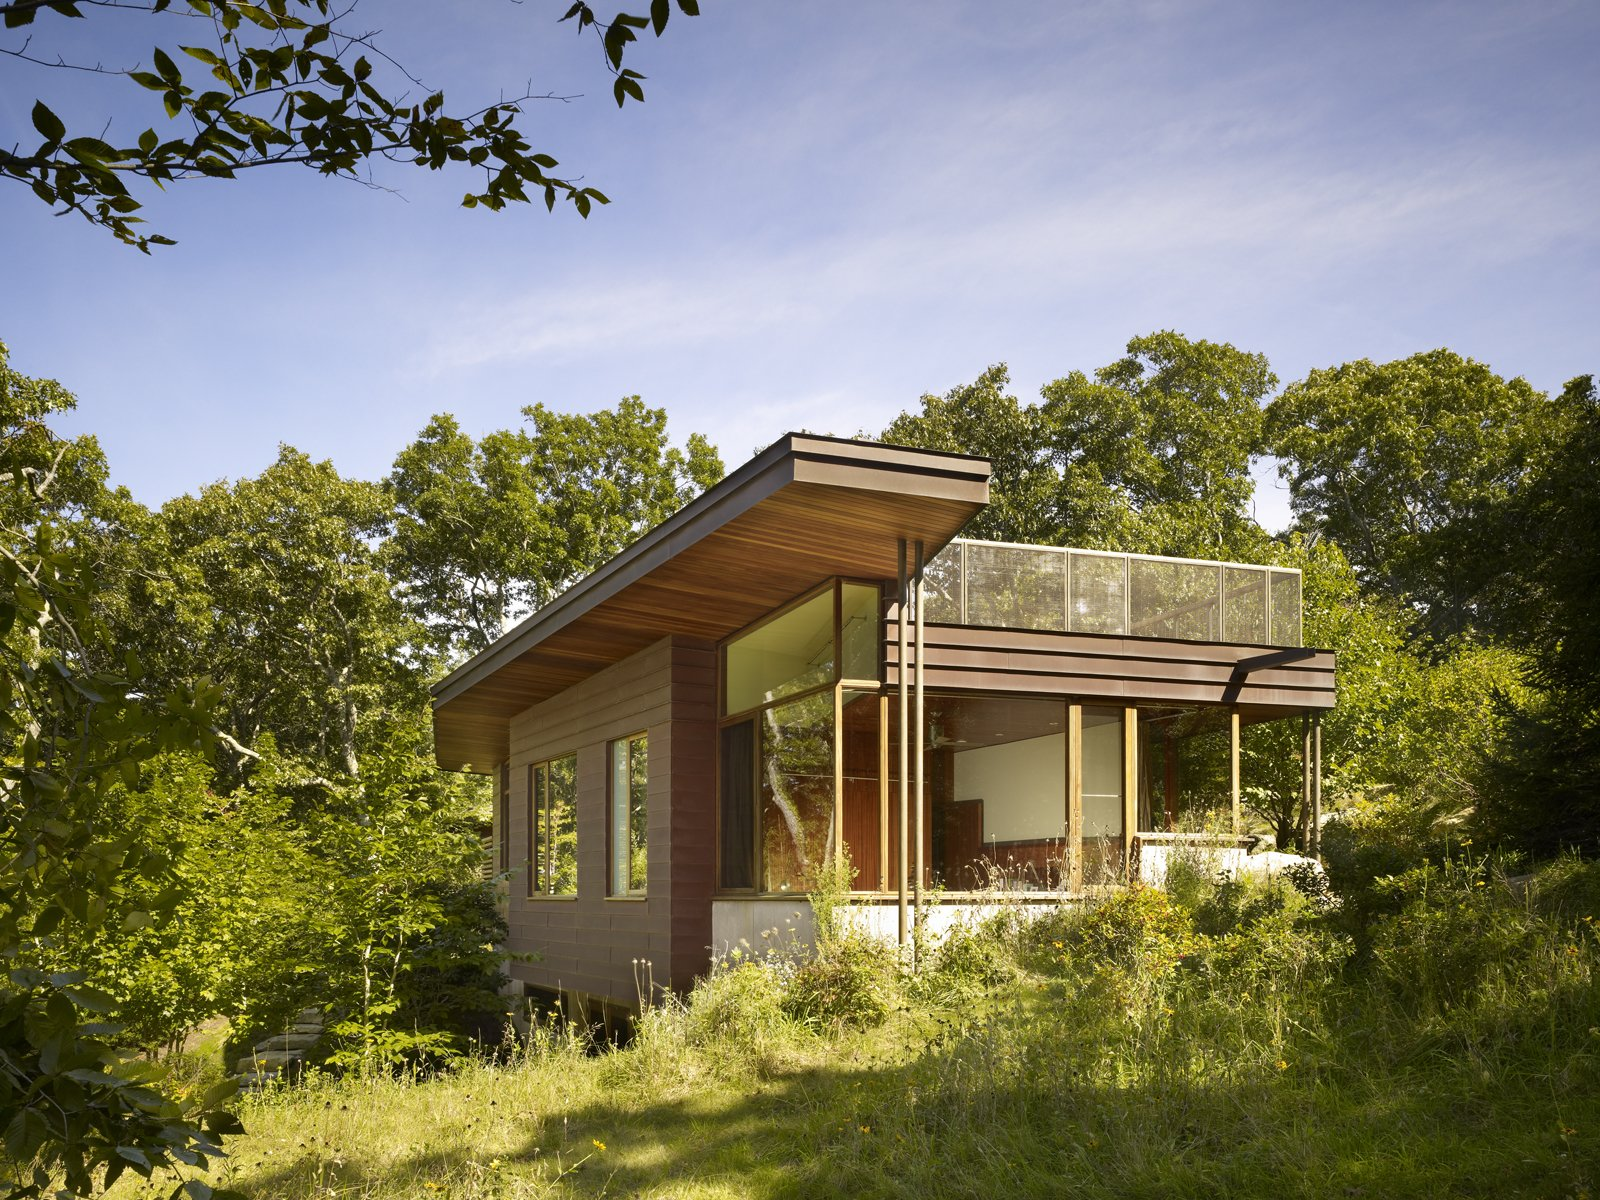 Tagged: Exterior, House, Cabin Building Type, Wood Siding Material, and Metal Siding Material.  Chilmark Guest House by Charles Rose Architects